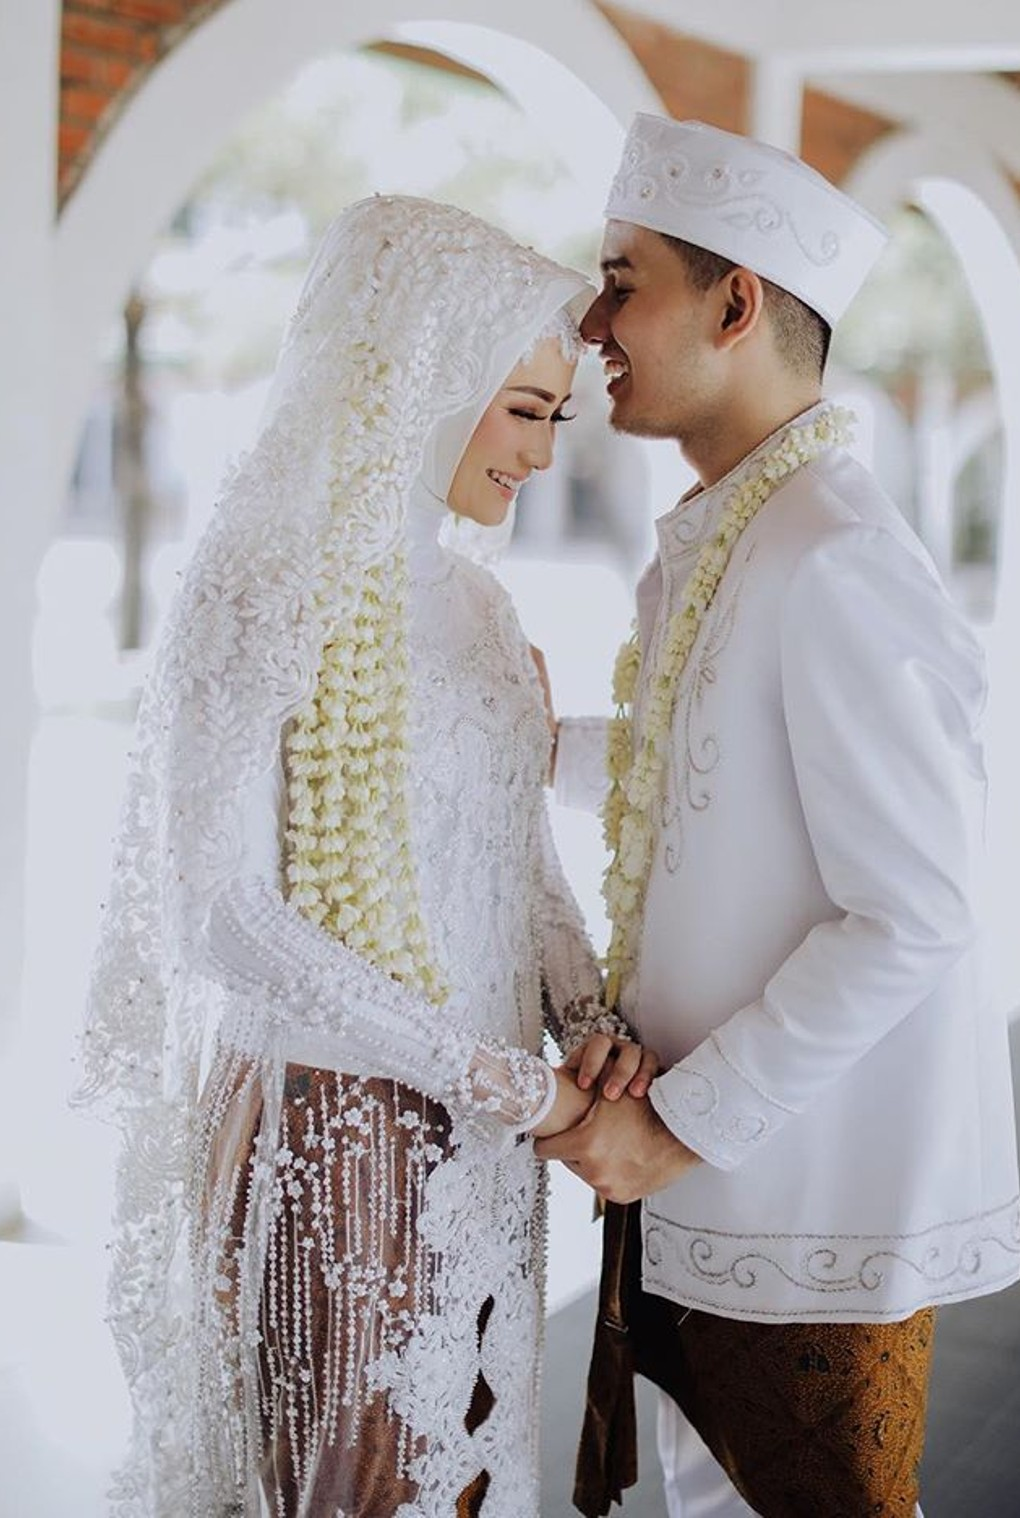 20 Hijab Wedding Dress Inspirations For Modest Brides